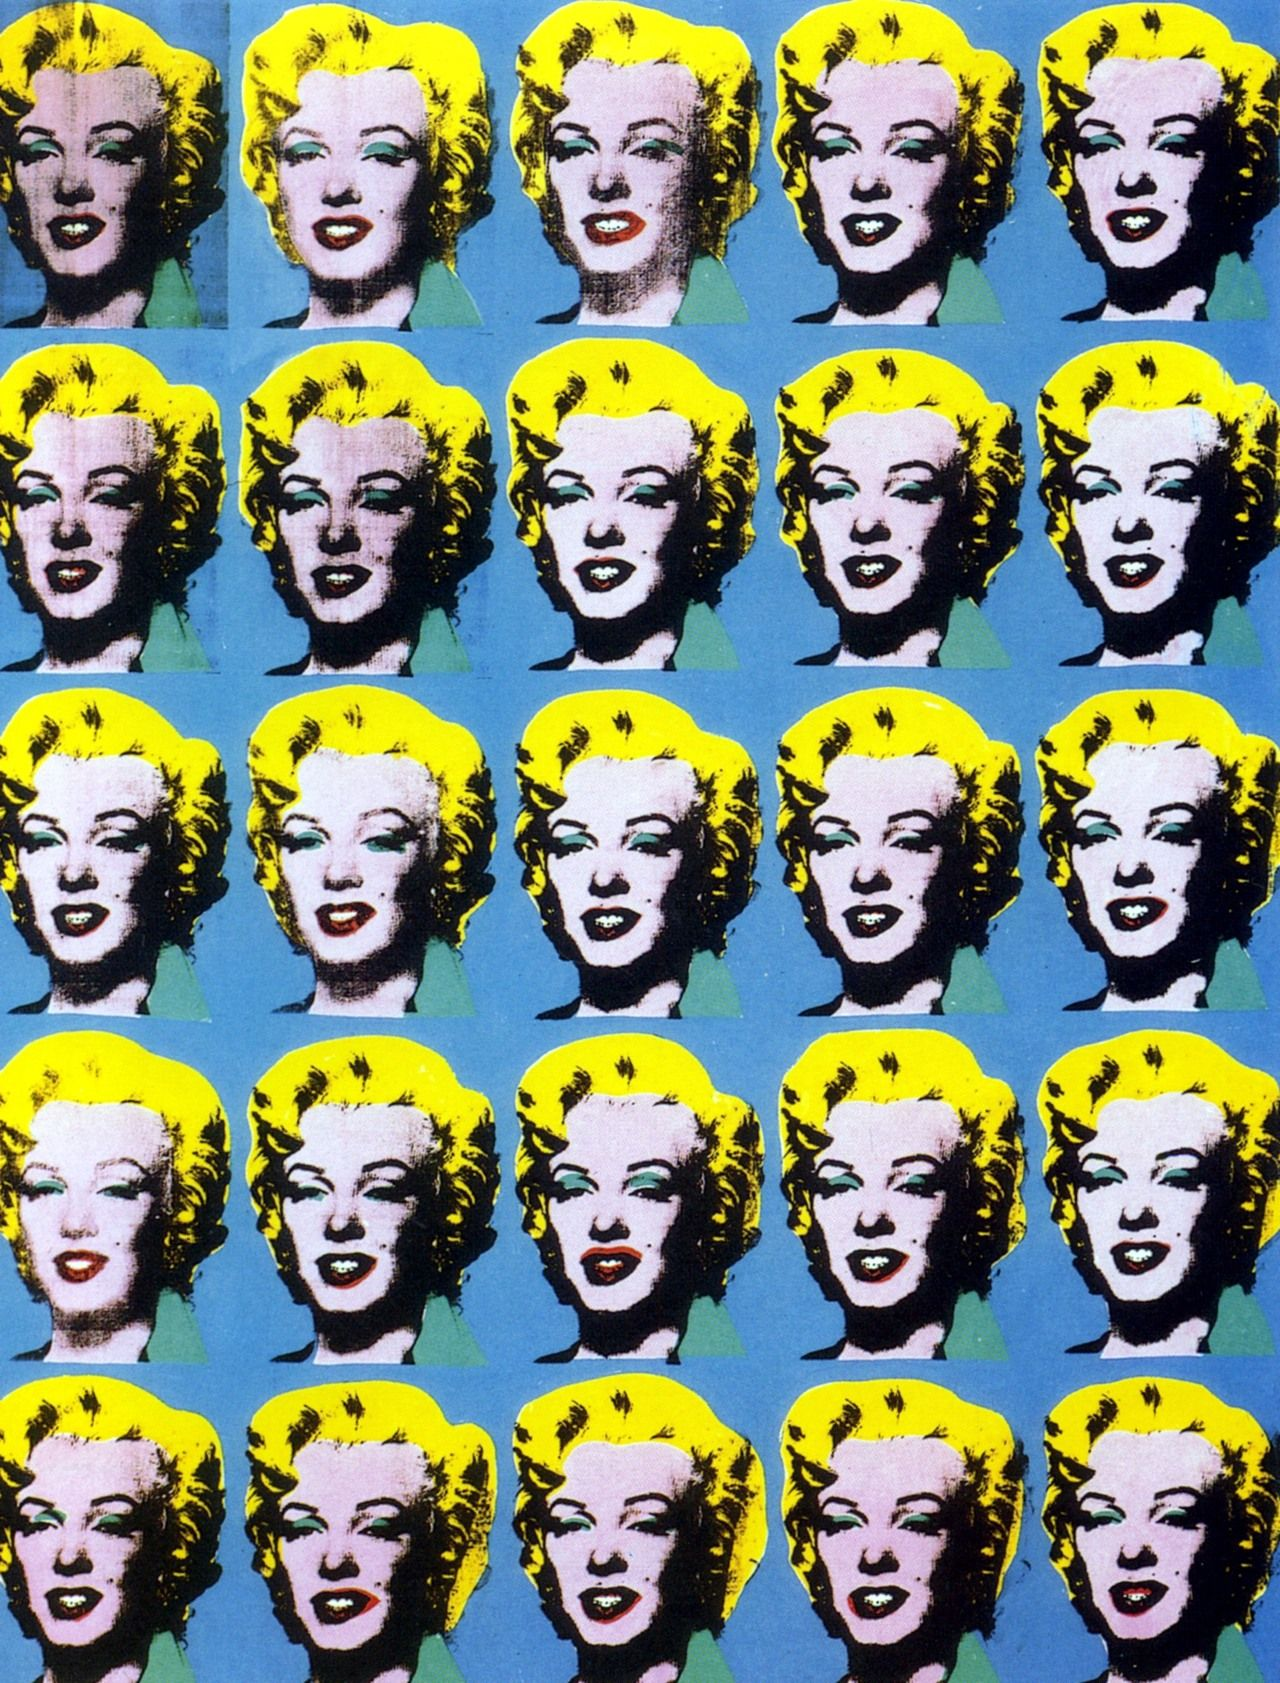 Marilyn Pop Art Andy Warhol Marilyn Monroe By Andy Warhol Andy 39s Marilyn Warhol